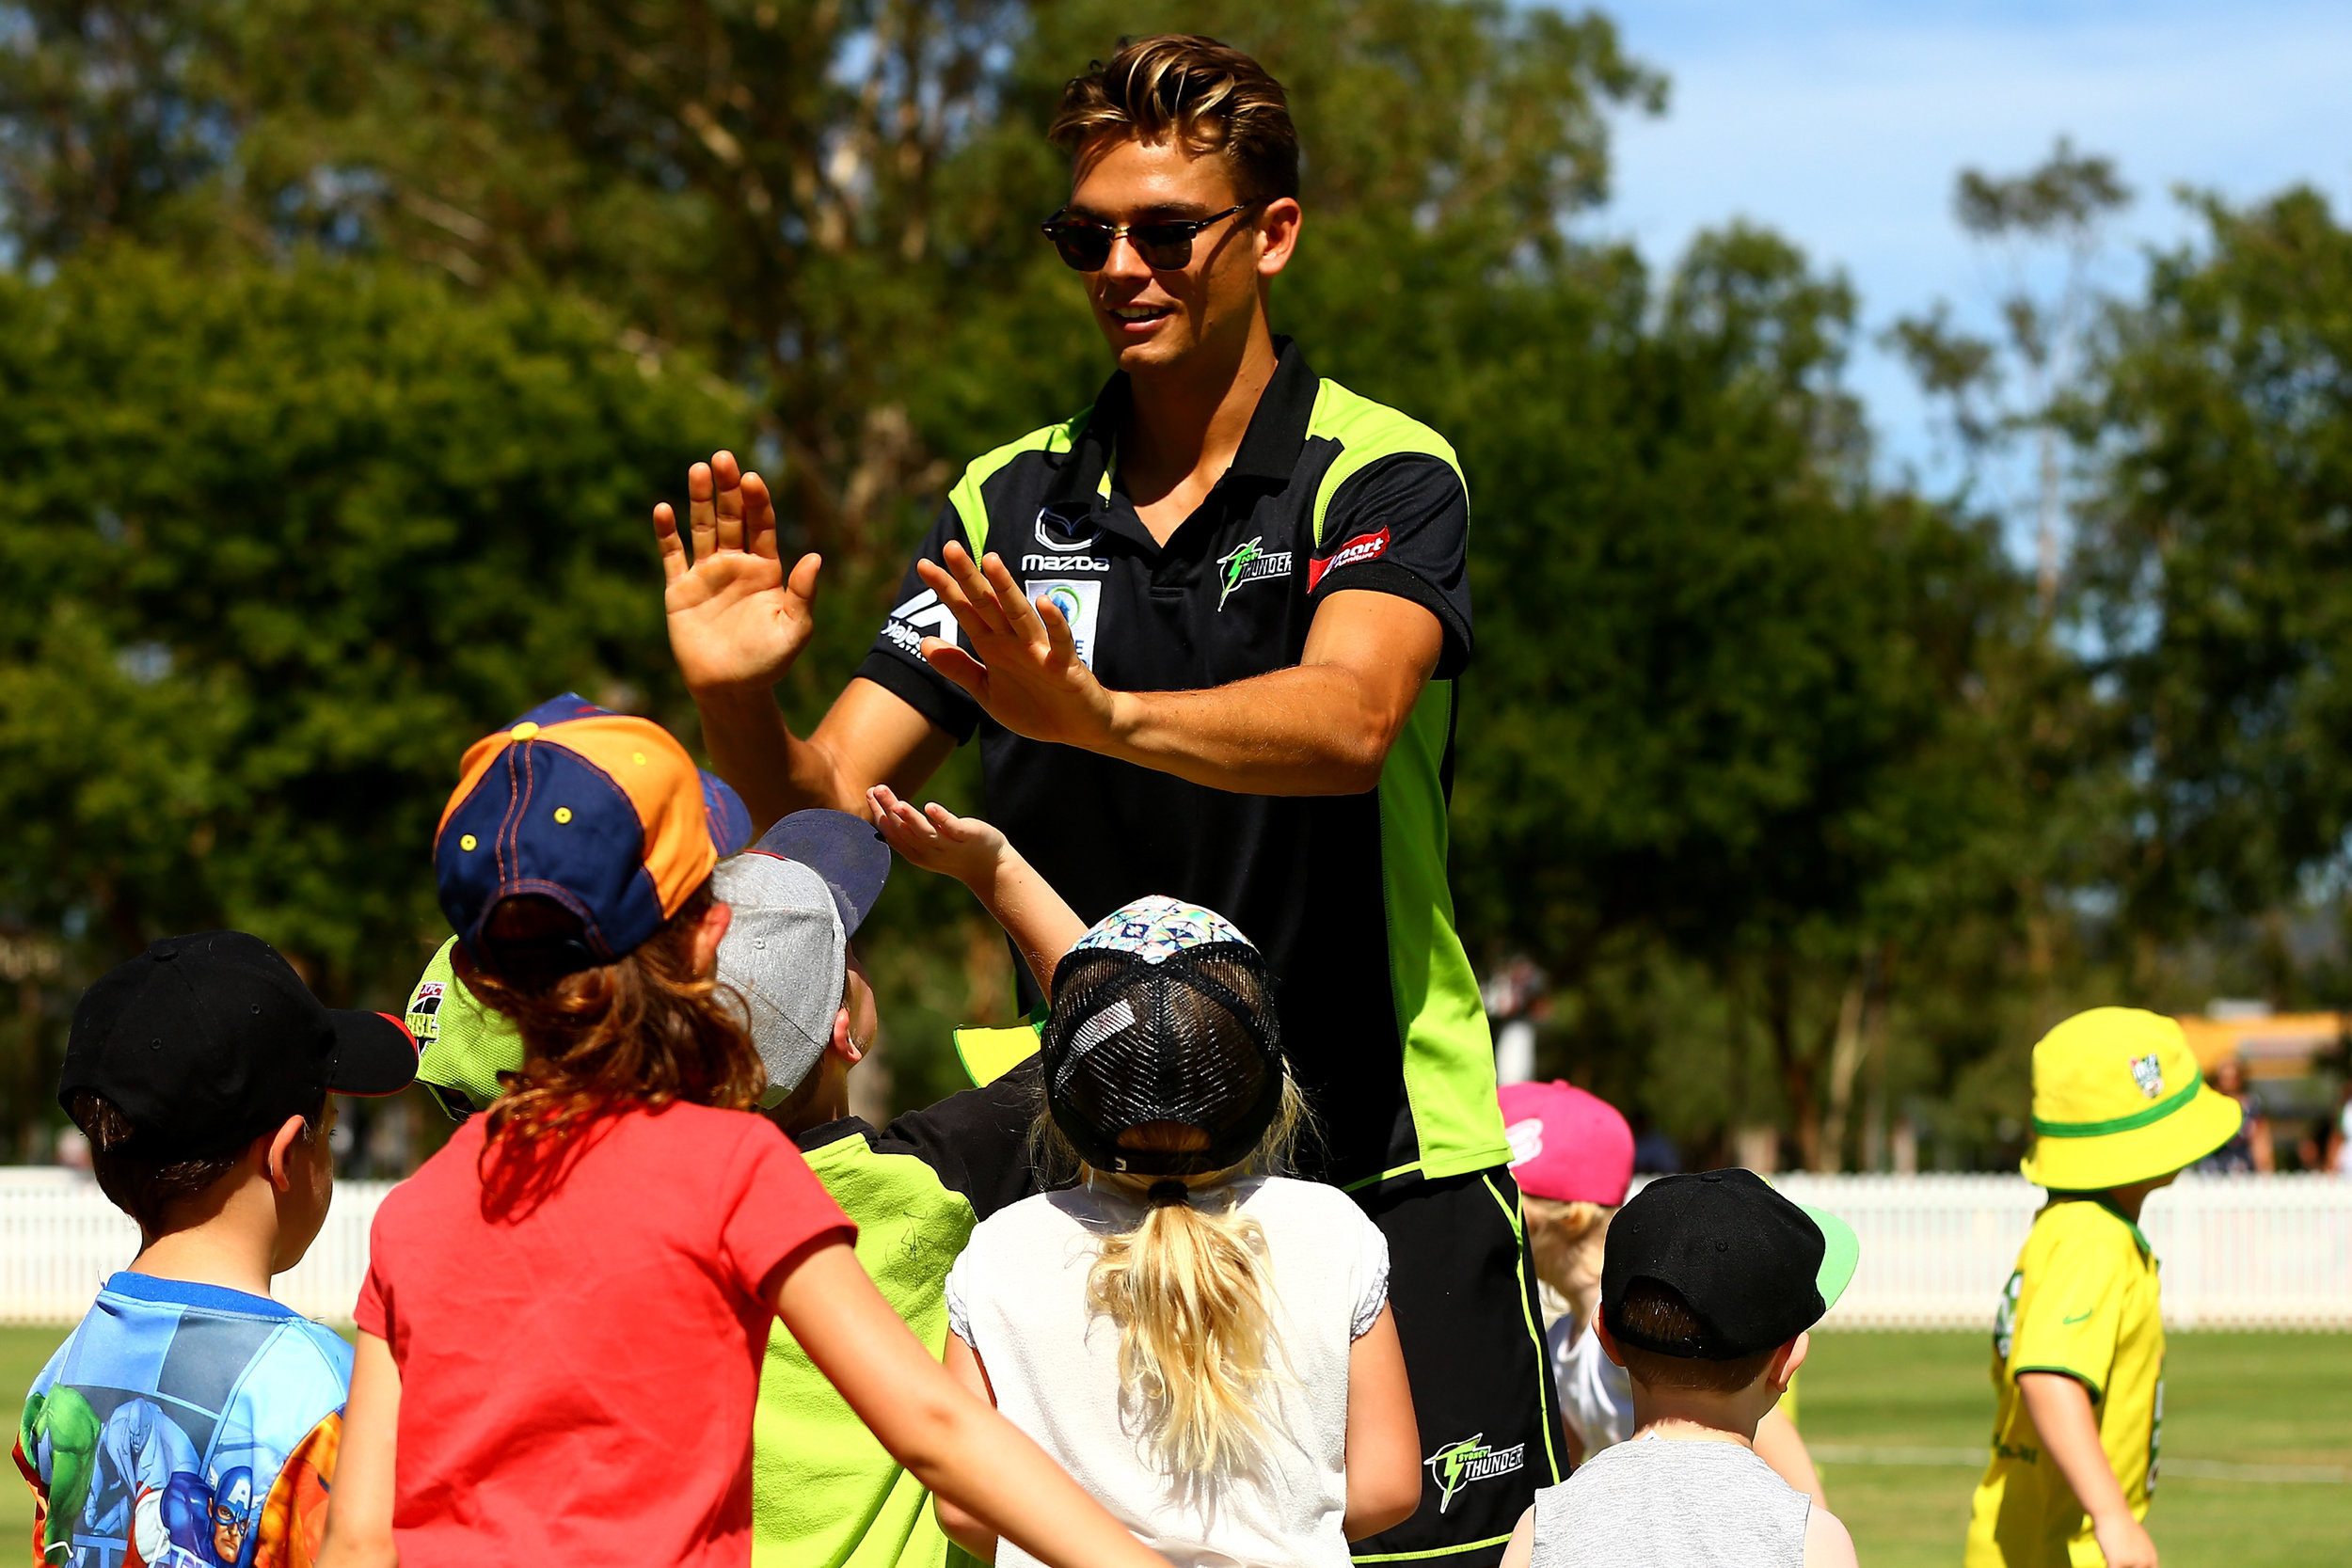 PENRITH, AUSTRALIA - JANUARY 18:  General scenes during the Sydney Thunder Super Clinics at Howell Oval on January 18, 2018 in Penrith, Australia. @ThunderWBBL @ThunderBBL @SydneyThunder #thundernation #superclinics  (Photo by Jeremy Ng/www.jeremyngphotos.com for Sydney Thunder)